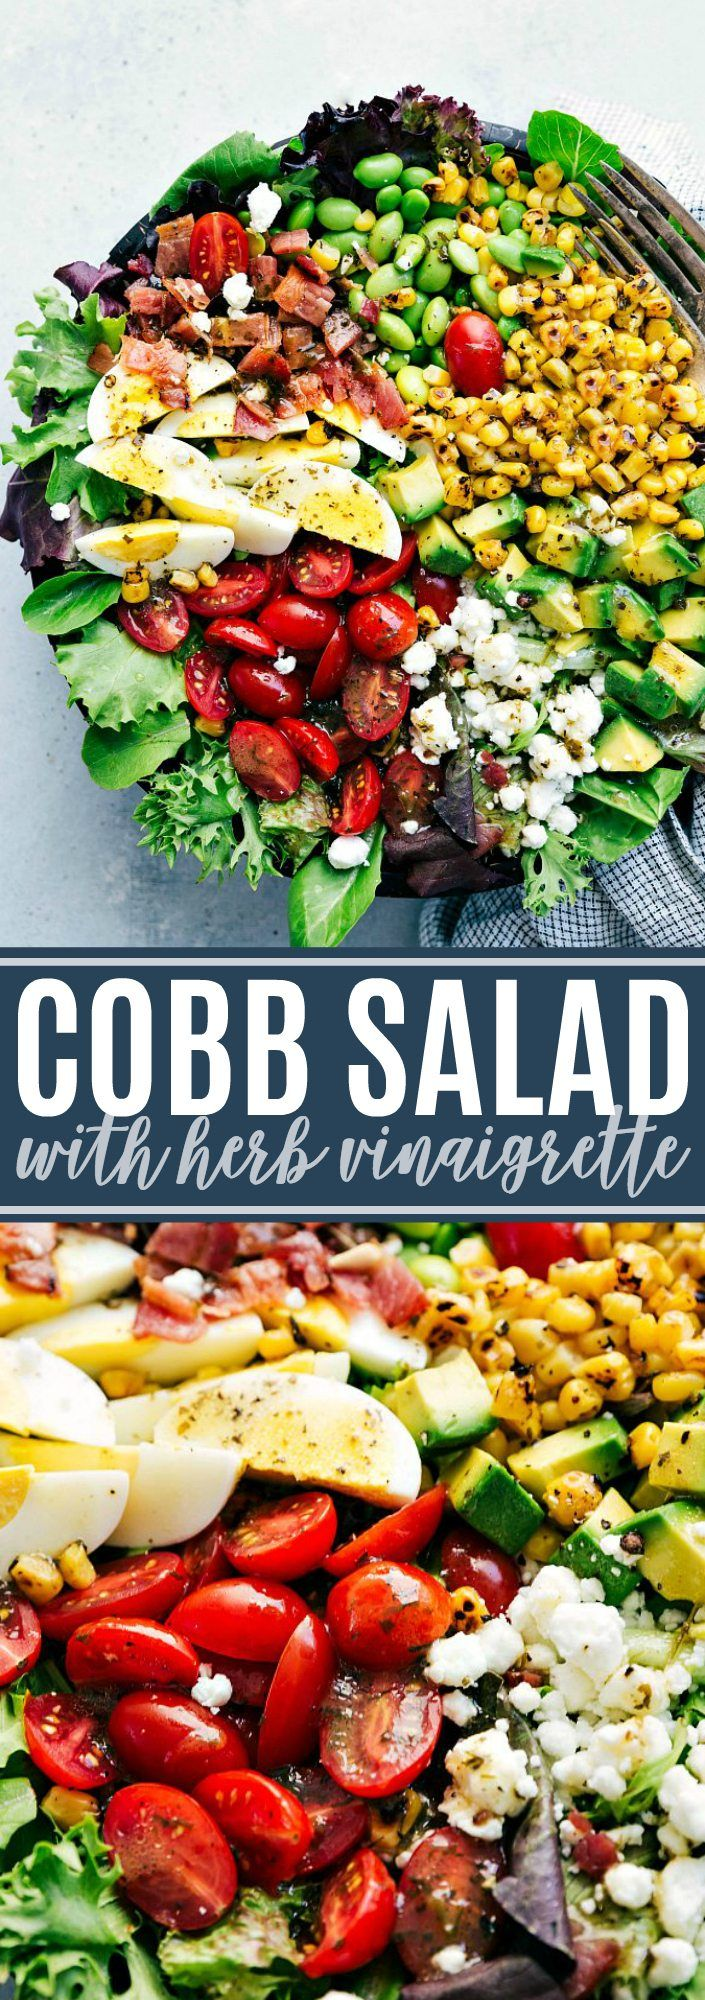 The ultimate BEST EVER easy COBB SALAD with a delicious tangy herb vinaigrette | Posted By: DebbieNet.com